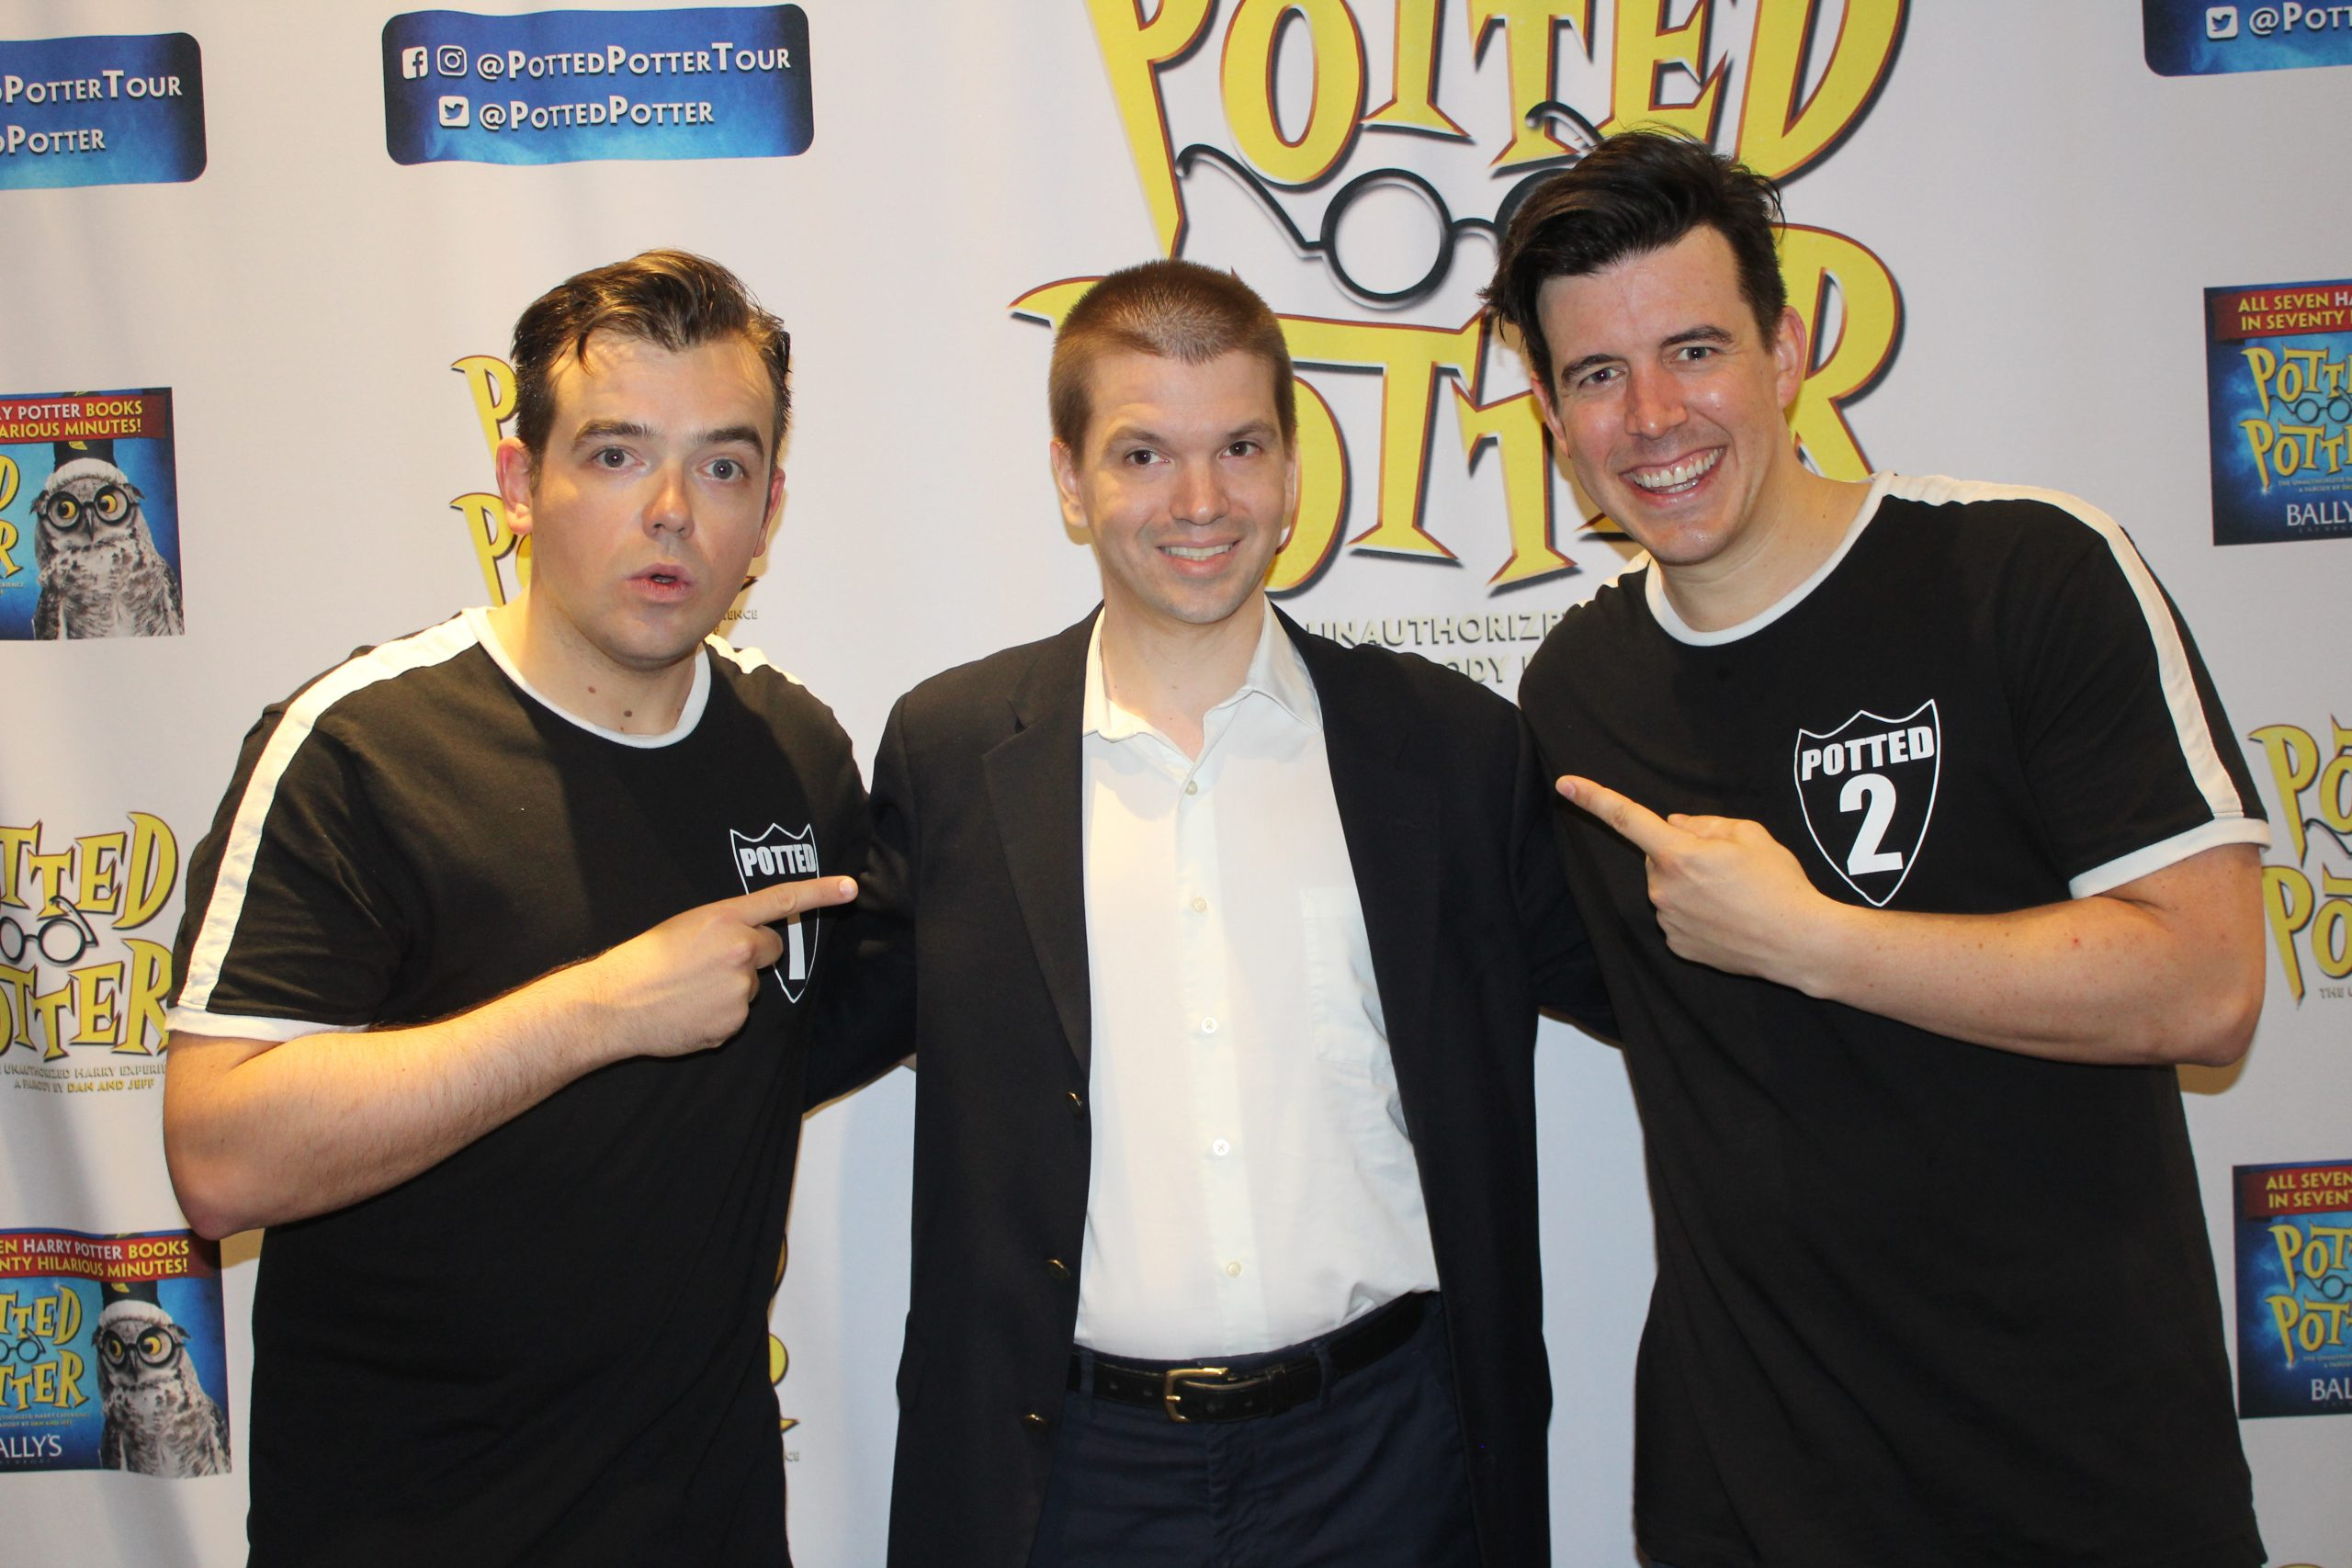 Chris Yandek, Actor James Percy, James Percy, Joseph Maudsley, Actor Joseph Maudsley, Potted Potter Las Vegas, Harry Potter Las Vegas Show, Potted Potter Las Vegas Show 2019, Potted Potter Las Vegas, Potted Potter Show 2019